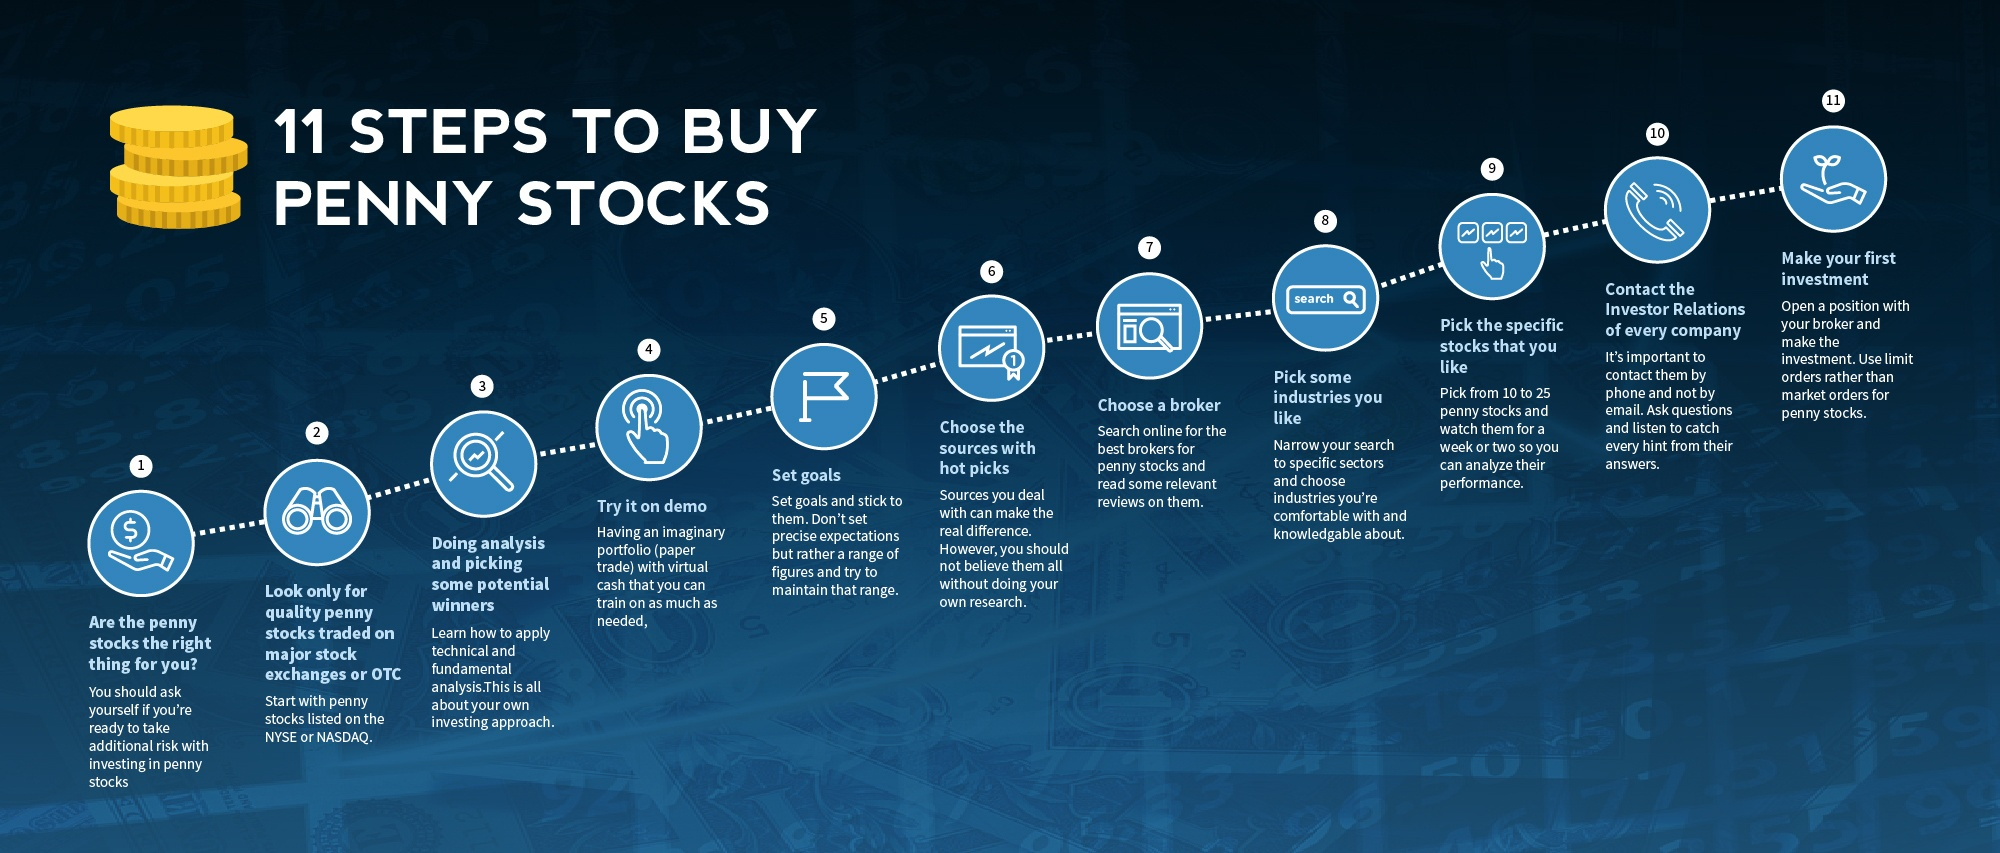 What is the difference between a penny stock and other